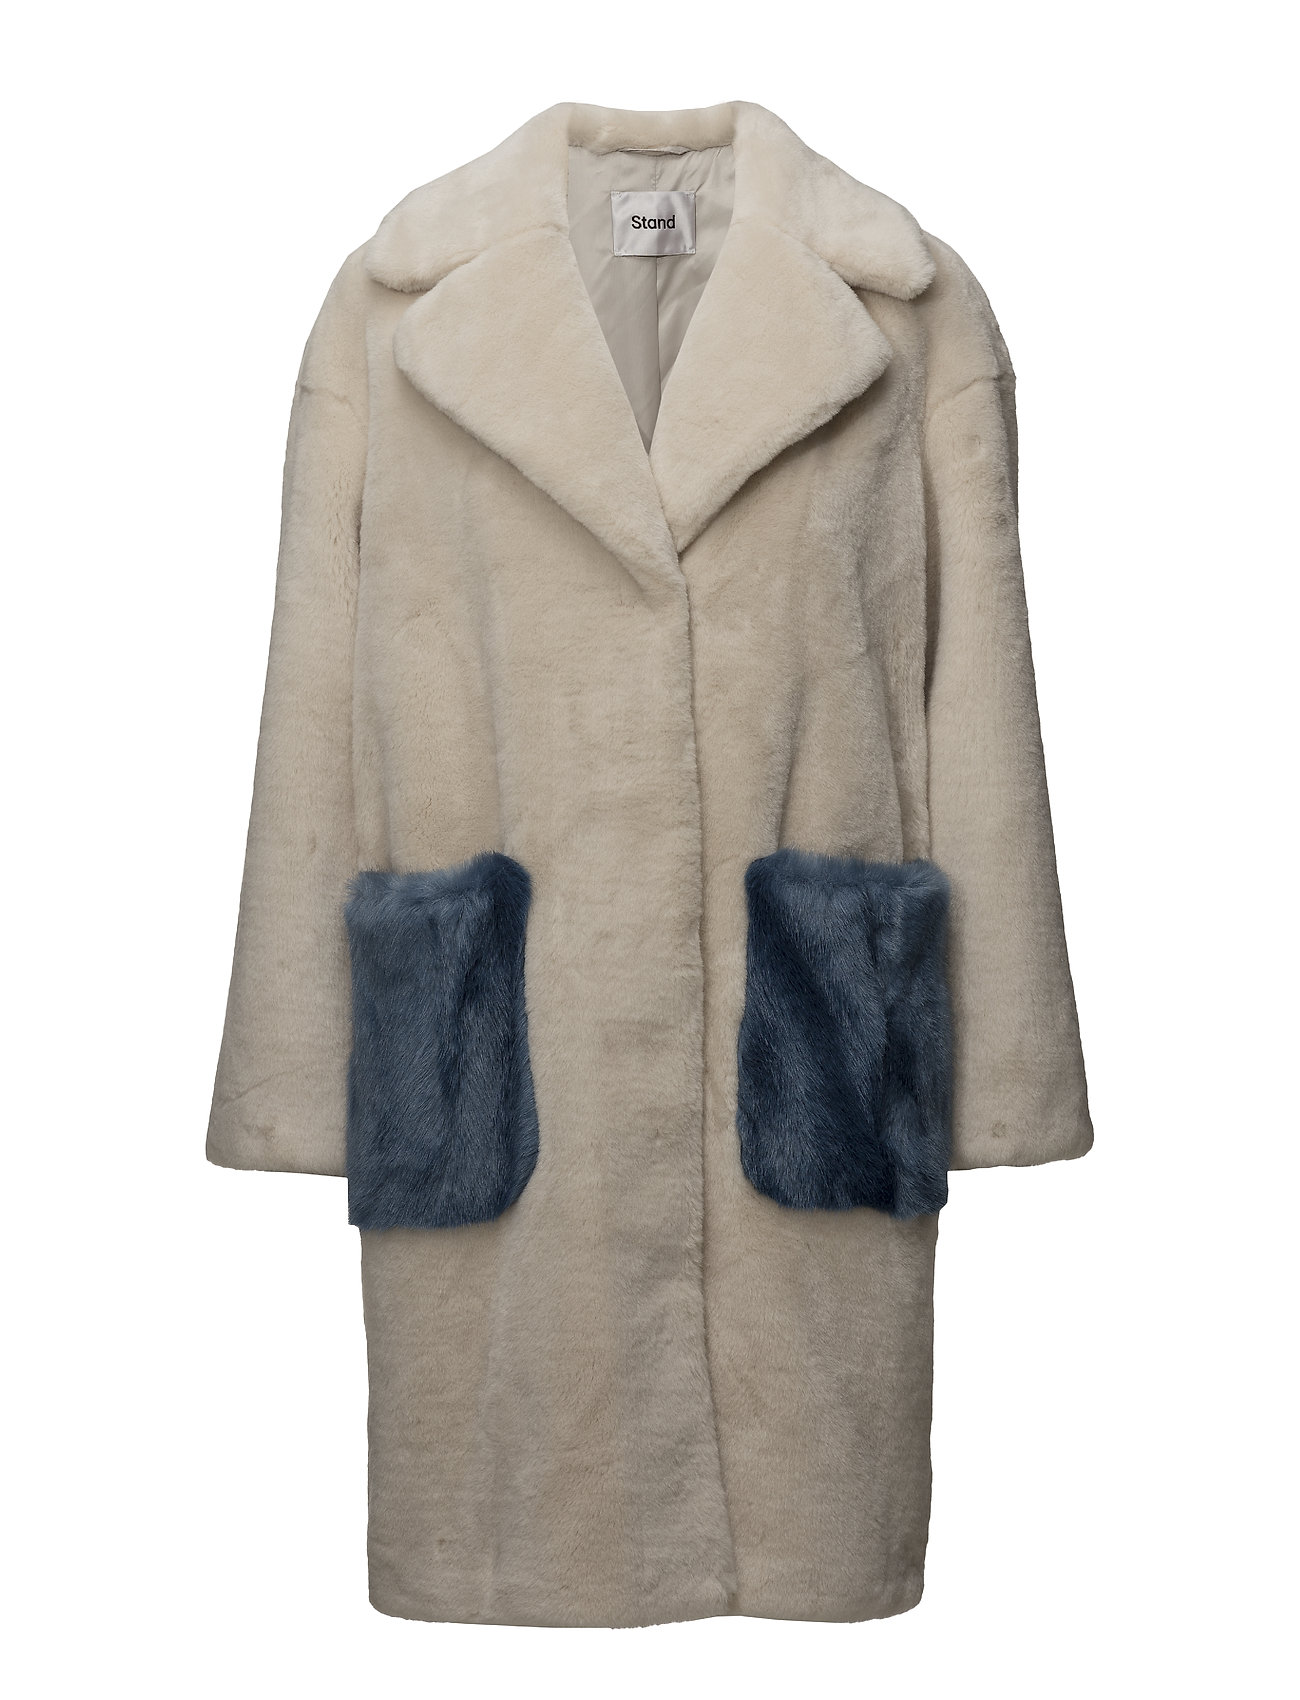 Image of Camille Coocon Coat (3073371245)